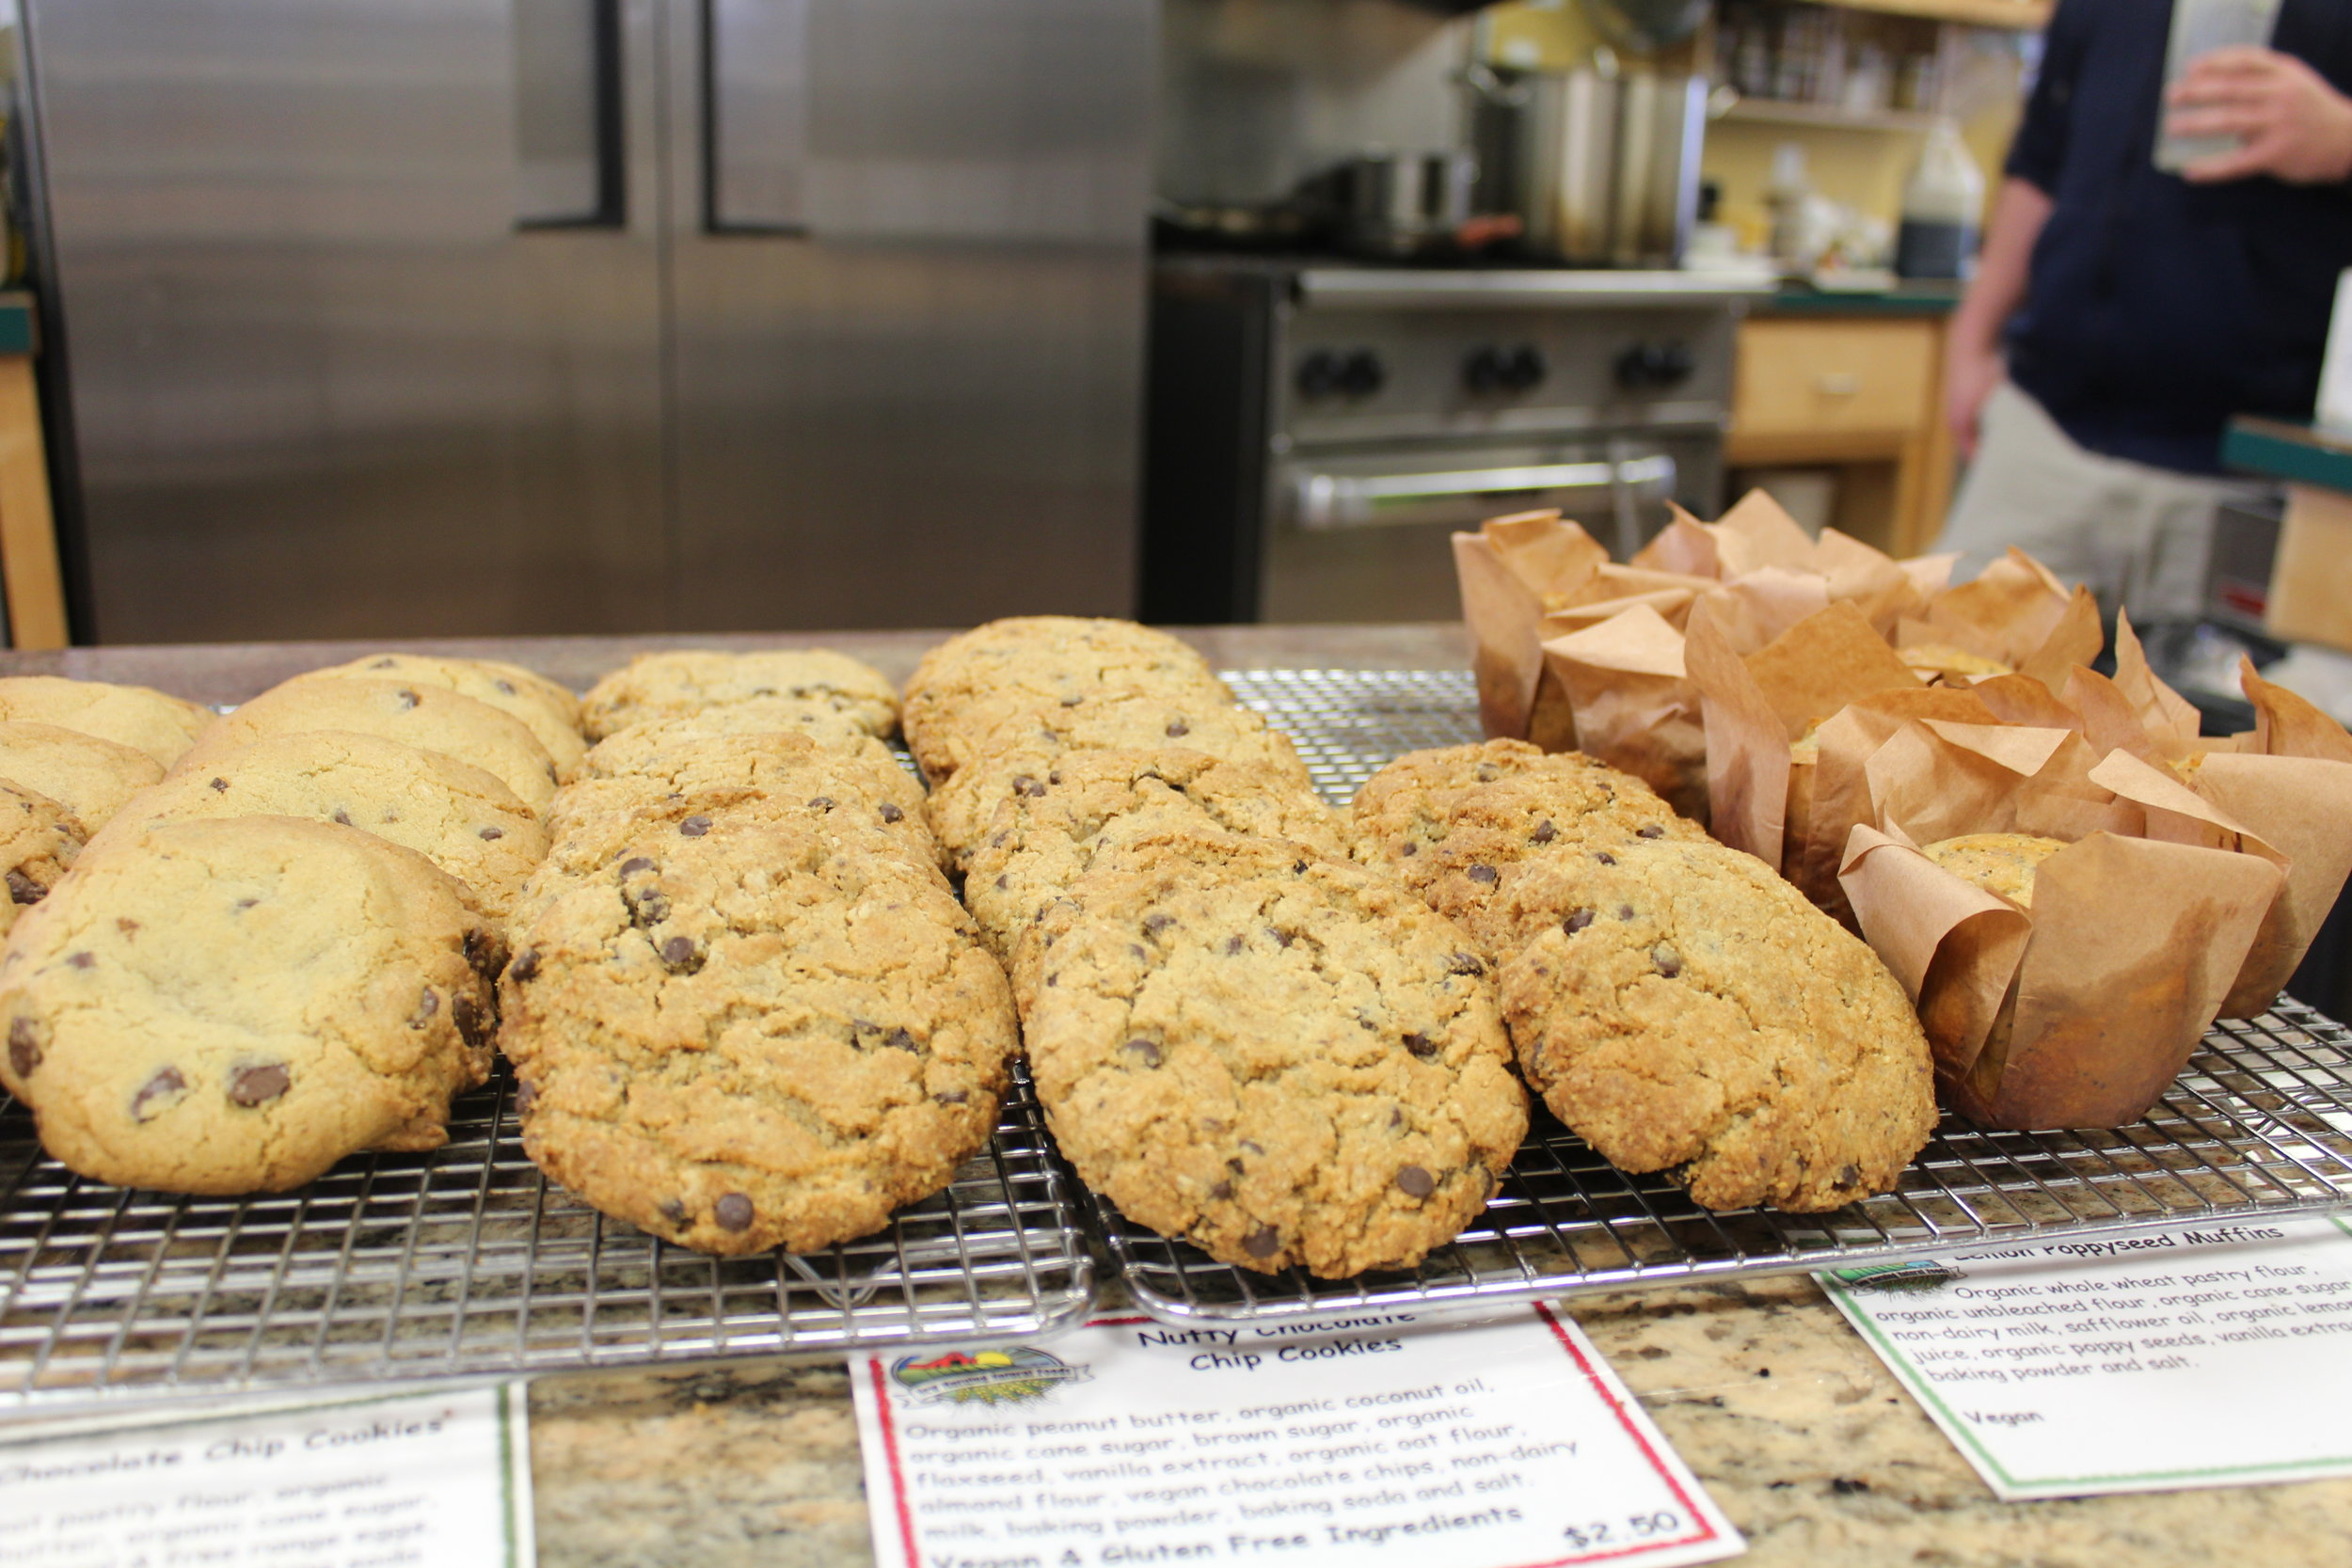 Our Baked Goods. Our Recipes.